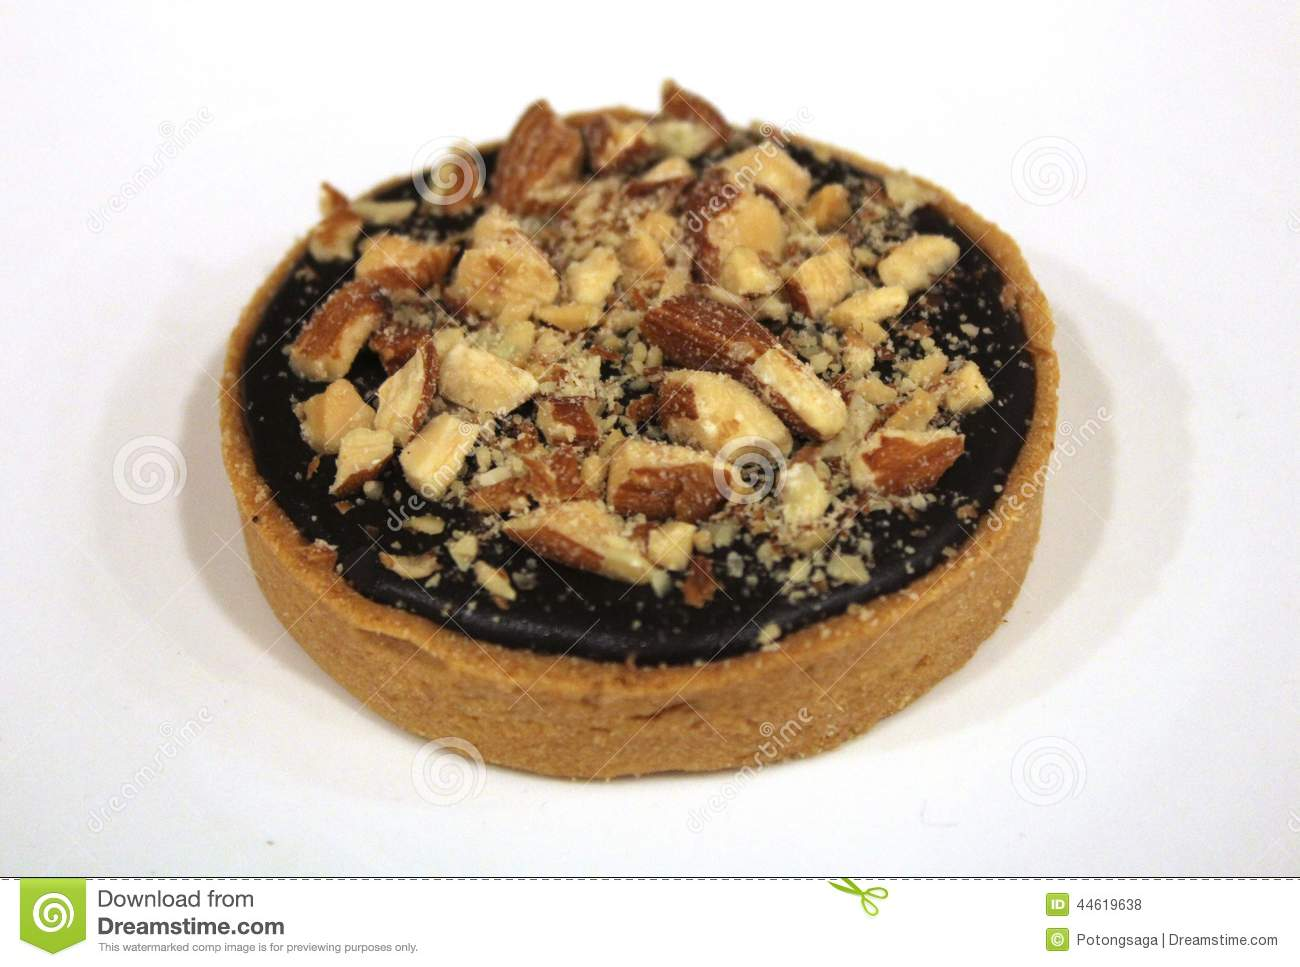 Download Chocolate Almond Tart Pastry On White Plate Background Stock Photo - Image of patisserie, plate: 44619638